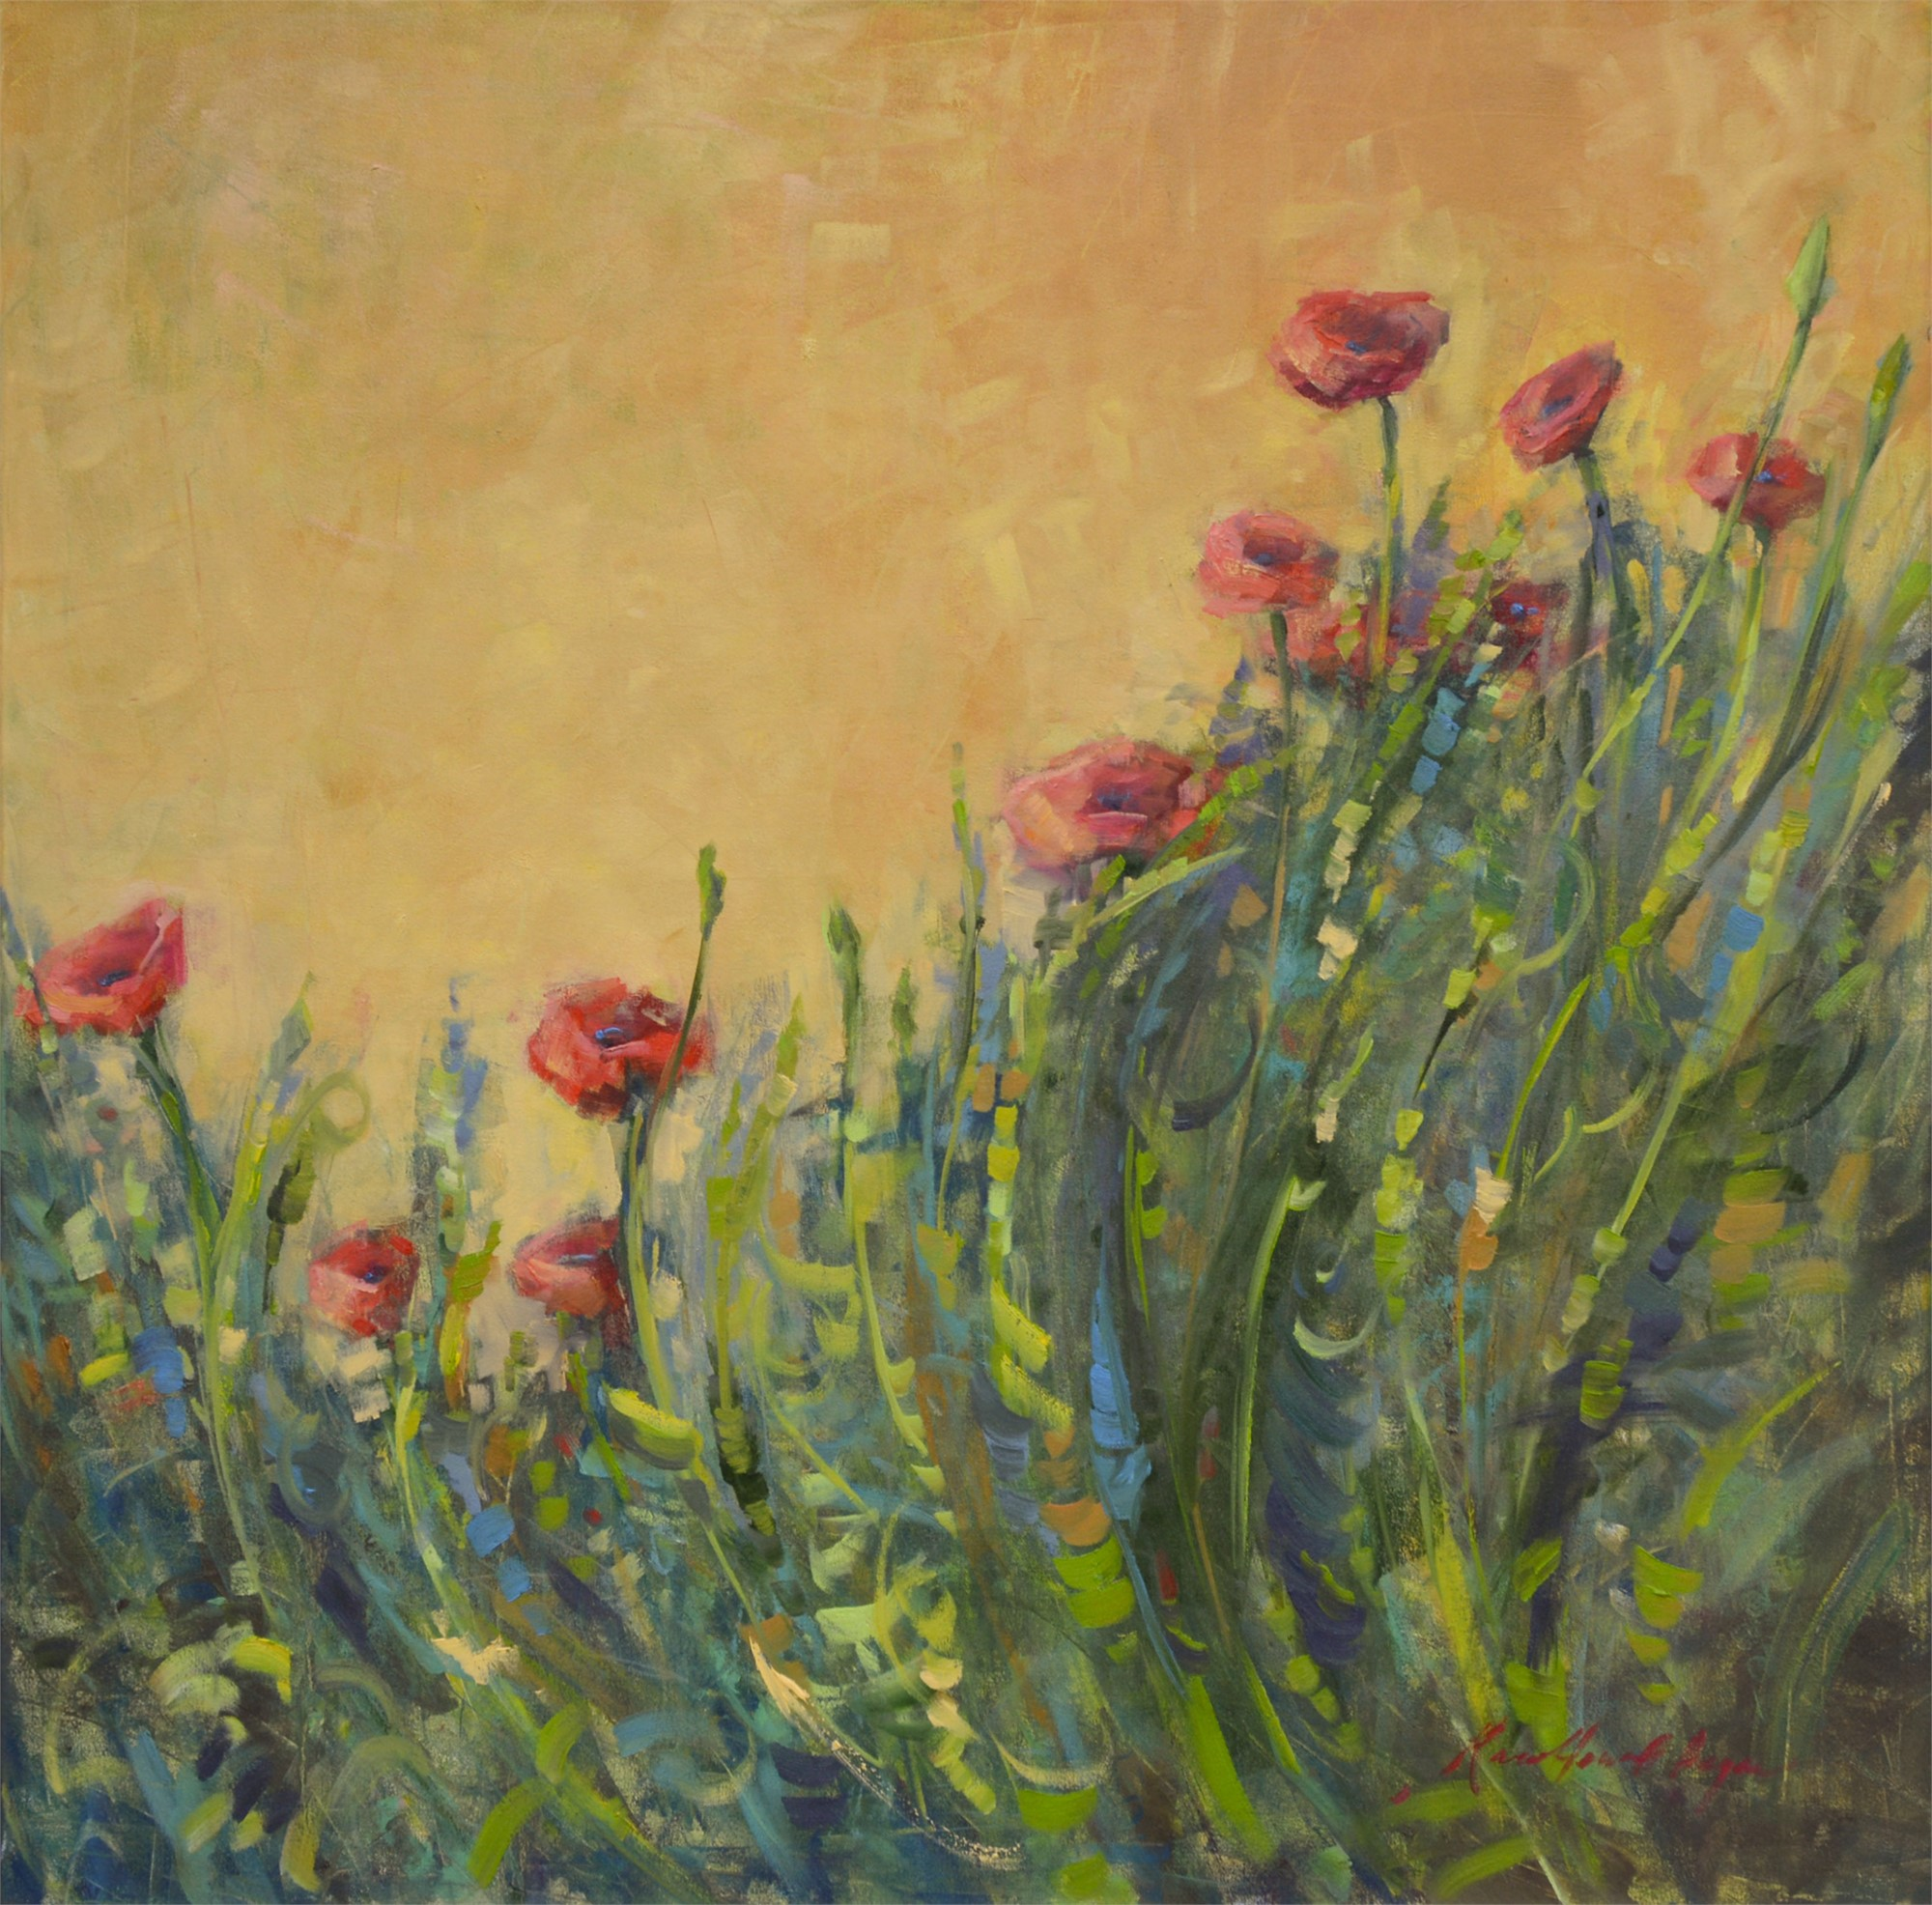 Italian Poppies on a Golden Morning by Karen Hewitt Hagan